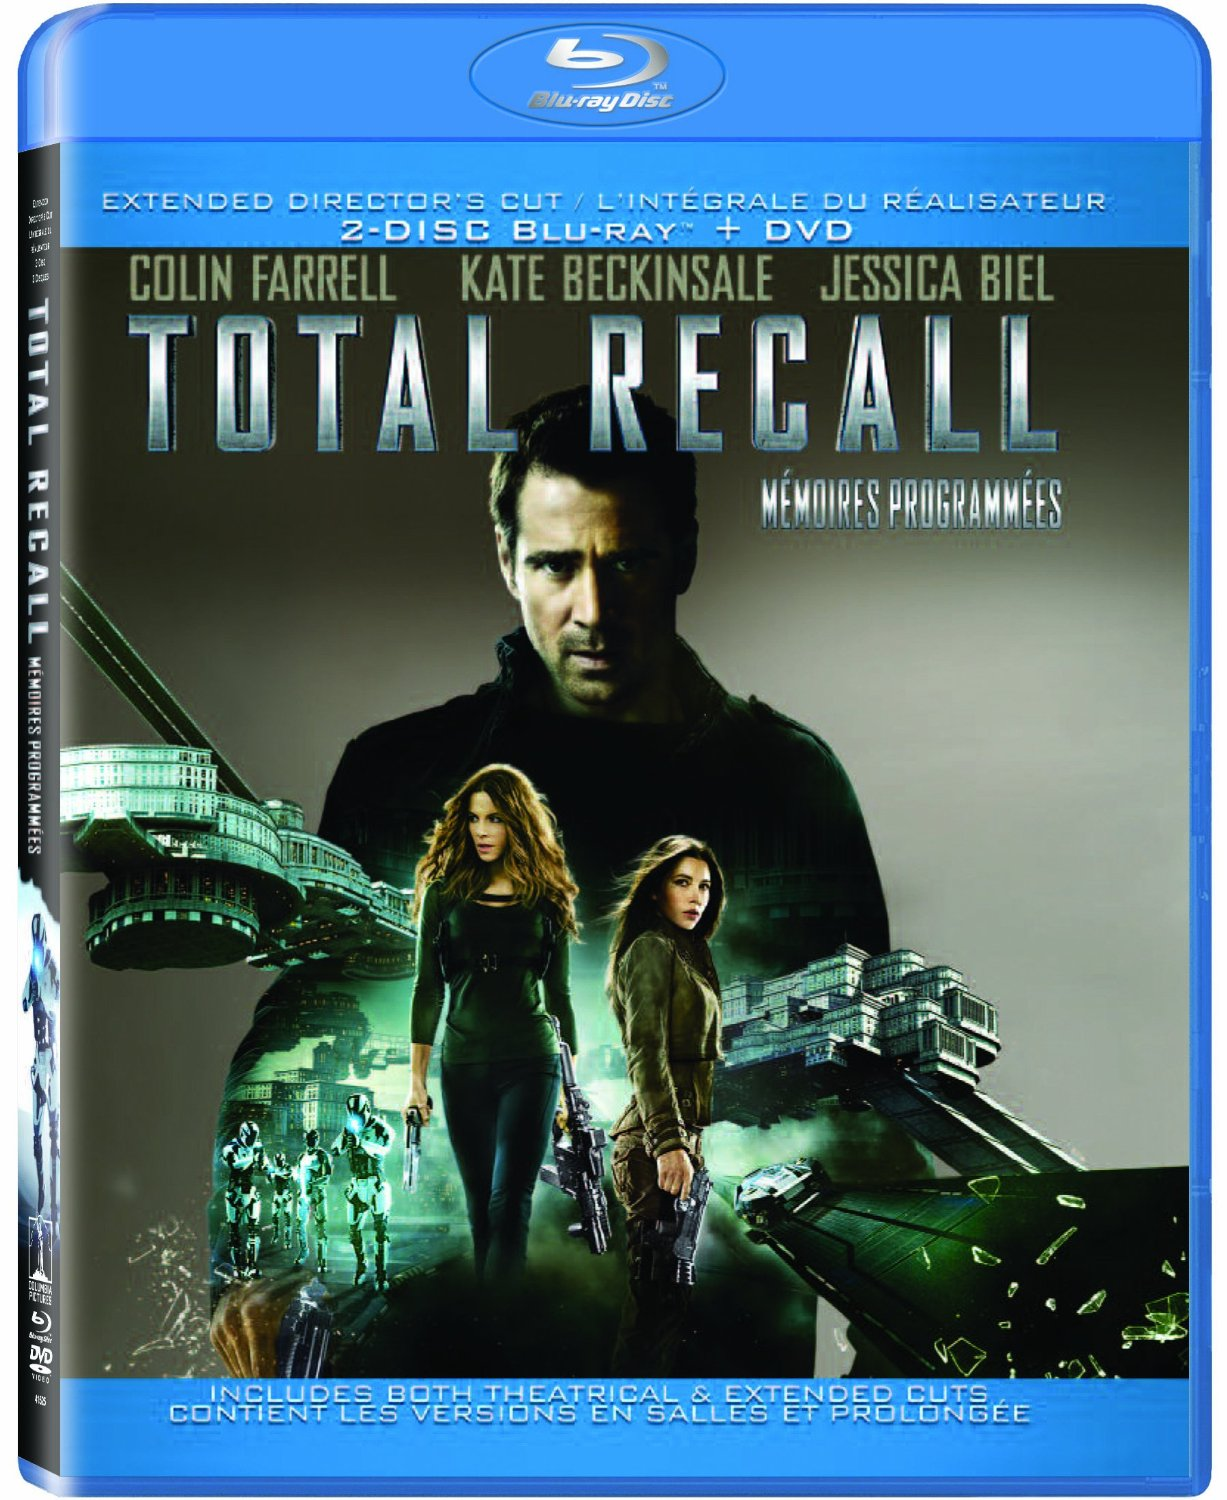 Otal Recall Extended Director's Cut DVD Ultraviolet Bilingual On Blu-Ray